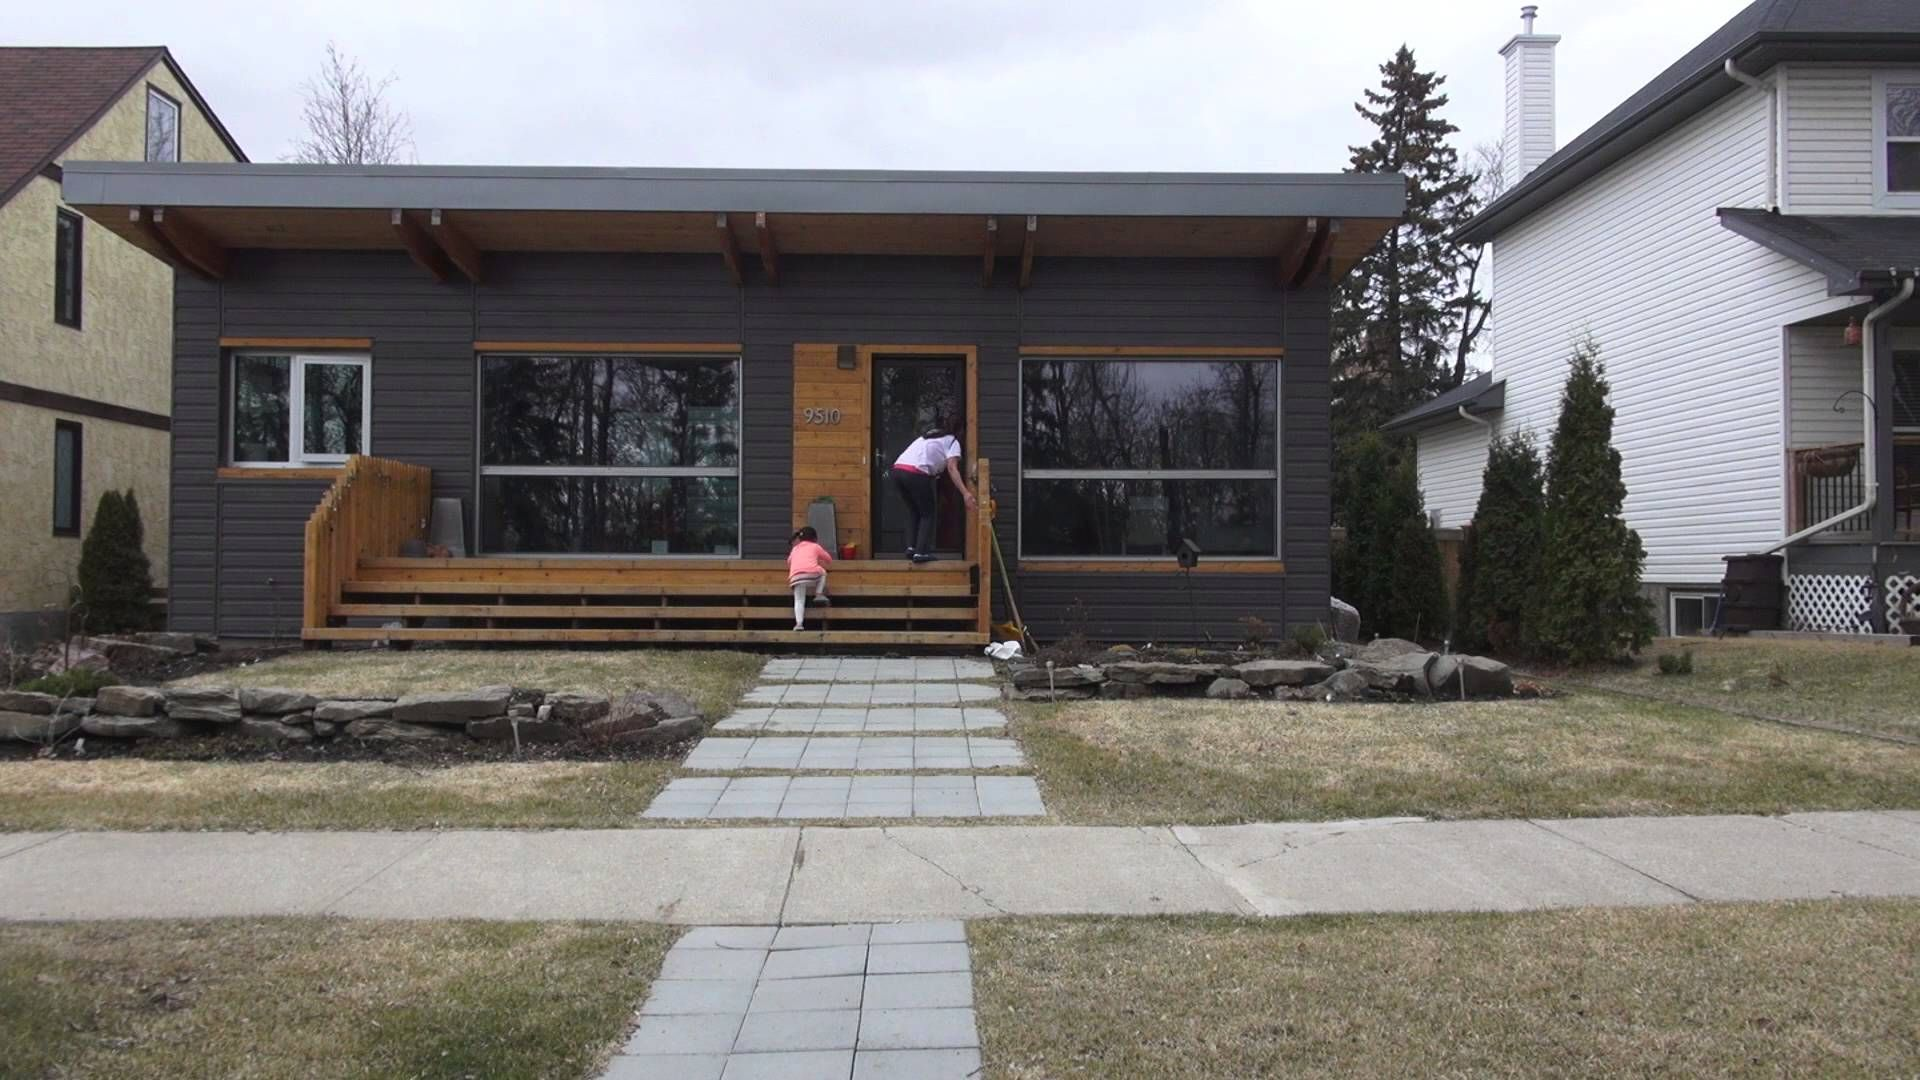 The Incredible Rise Of Net Zero Homes Has The Potential To